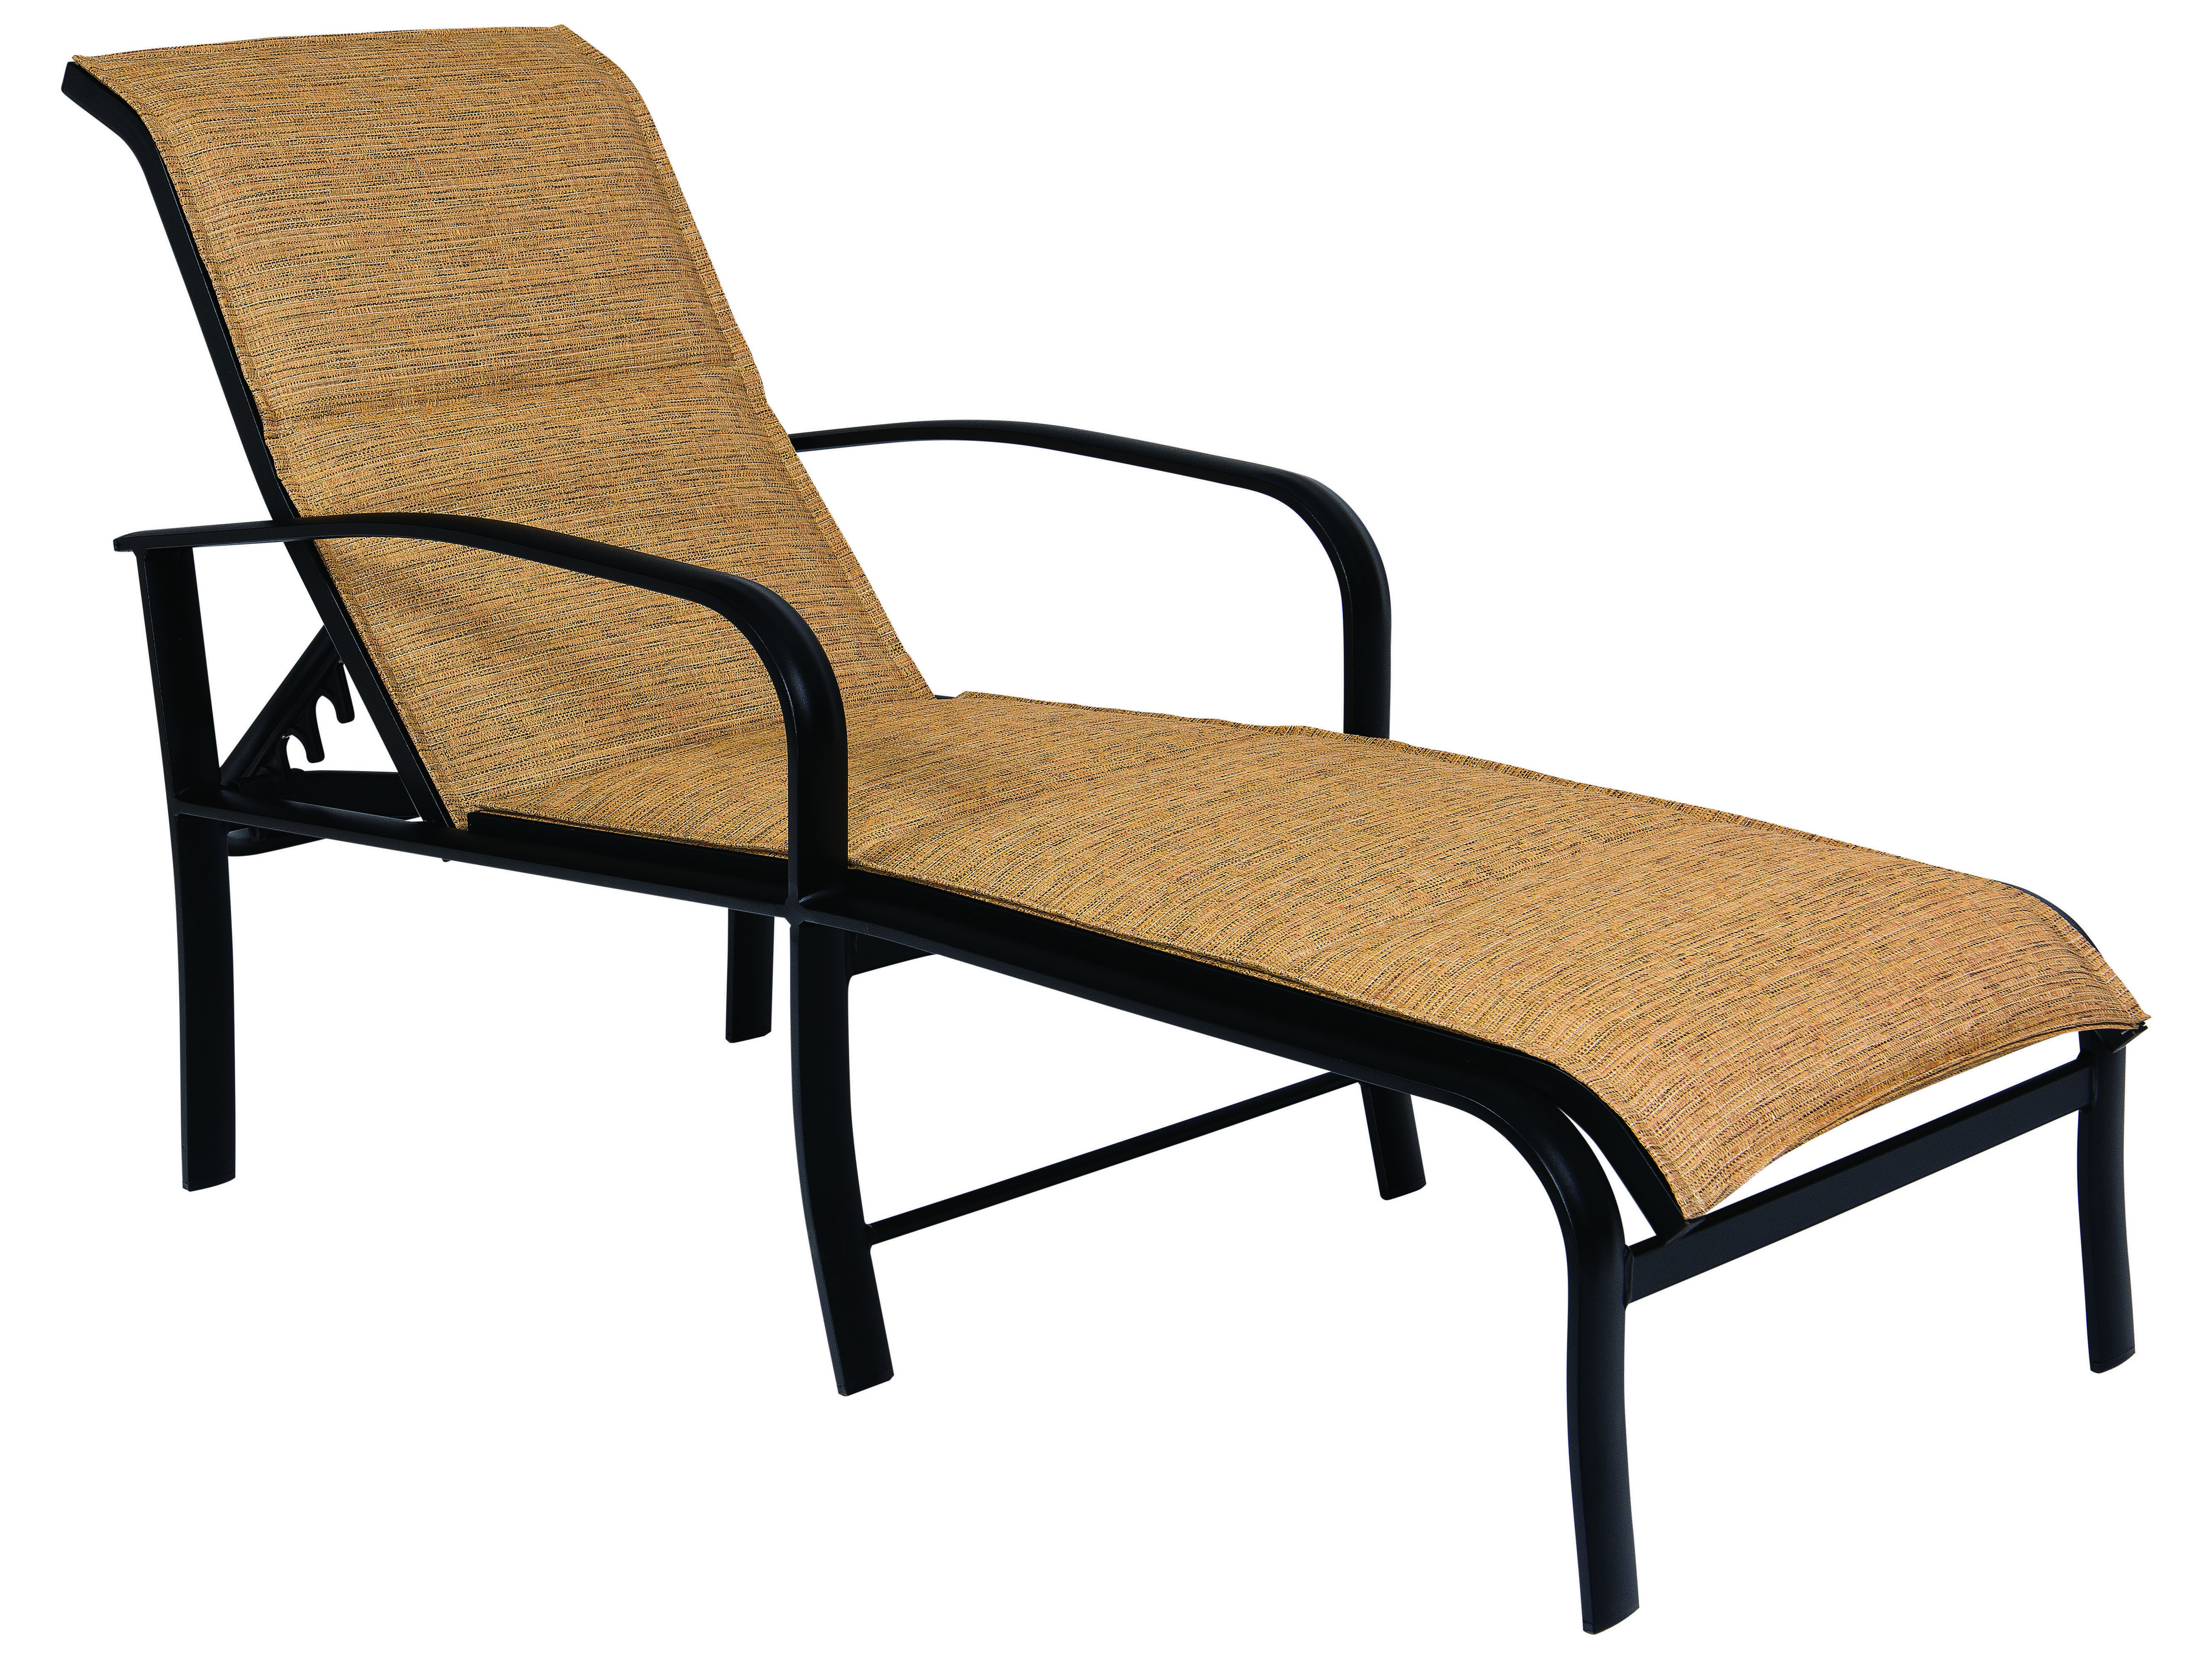 Woodard fremont padded sling aluminum adjustable chaise for Aluminium chaise lounge